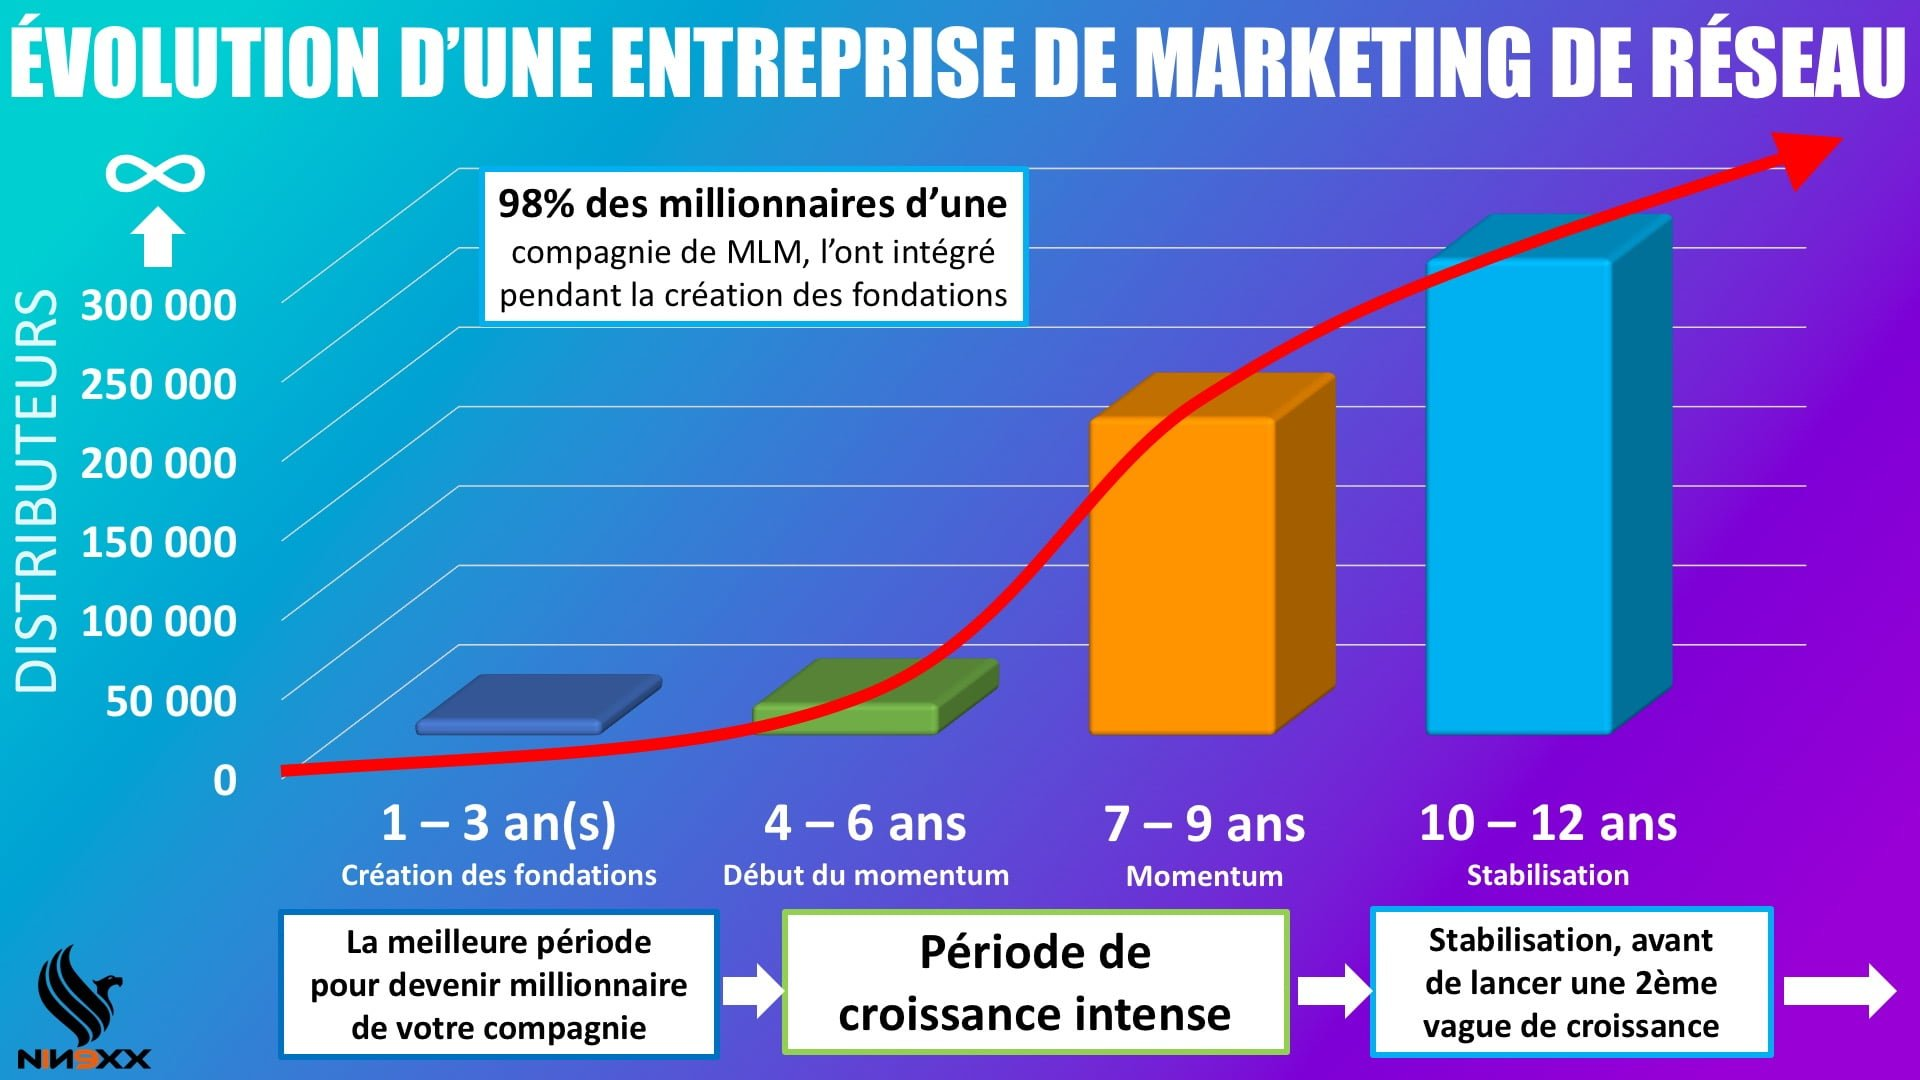 EVOLUTION D'UNE ENTREPRISE DE MARKETING DE RESEAU NINEXX